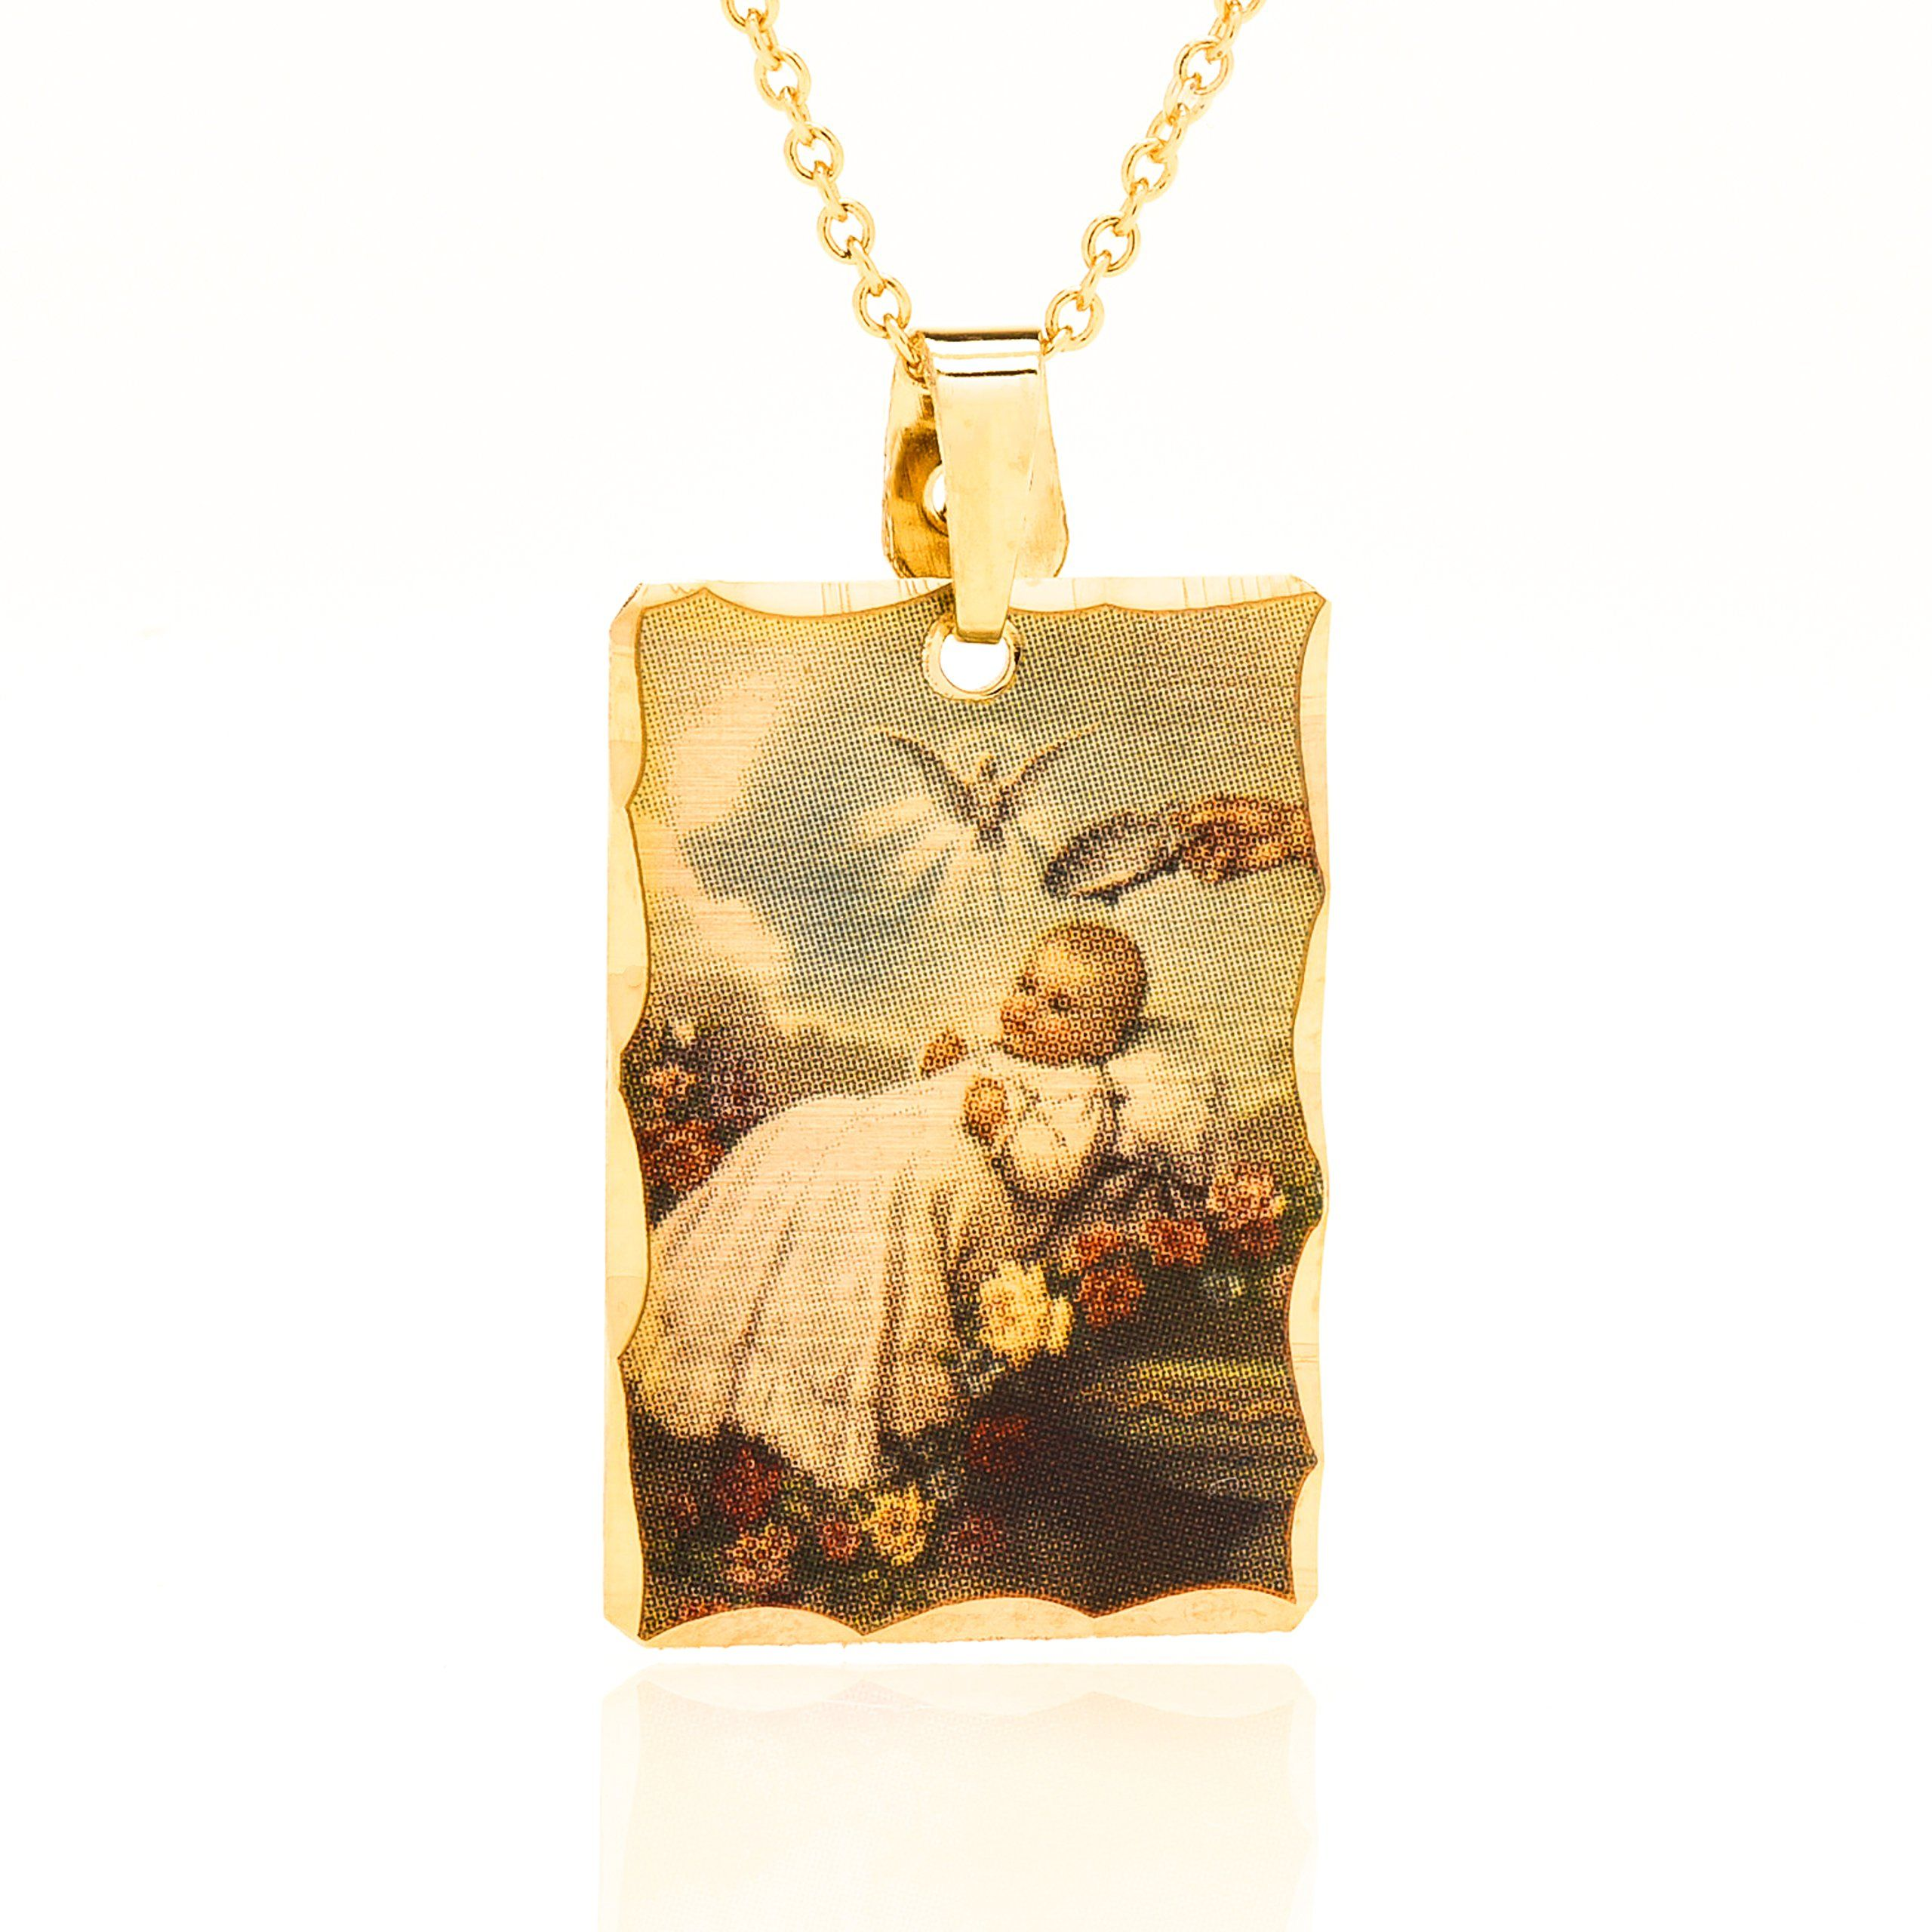 bulgari gift pendant baptism eleuteri collections item